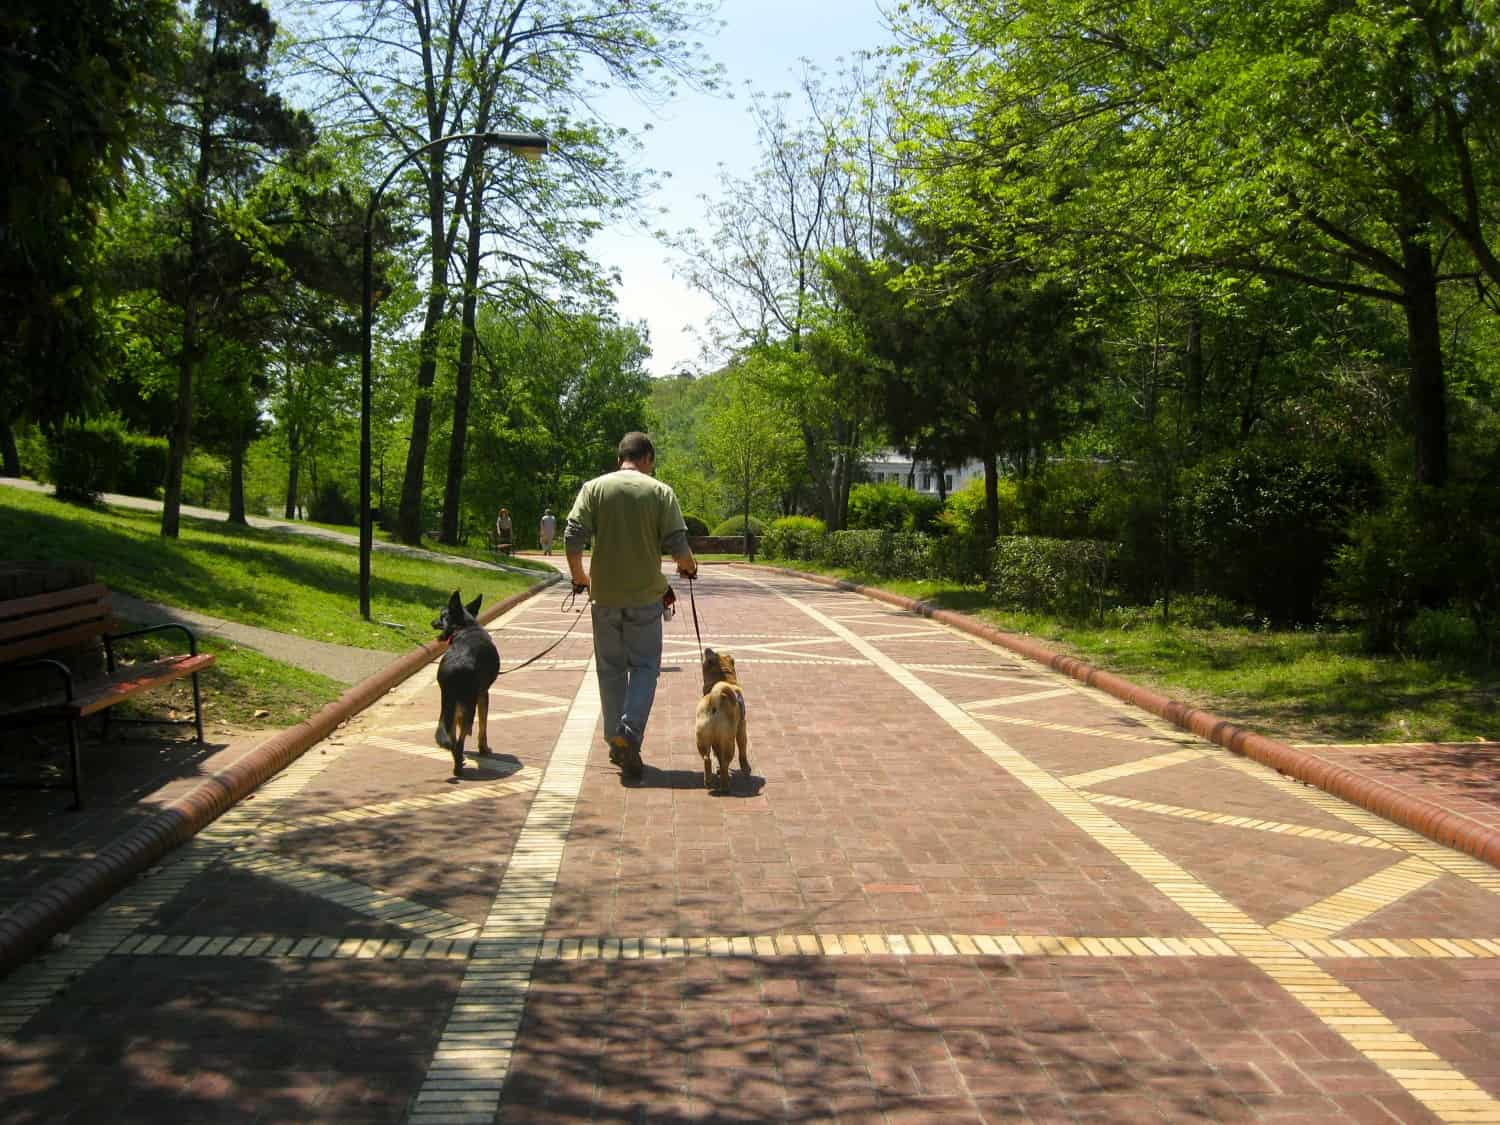 Buster the German Shepherd, Rod the human, and Ty the Shar-pei walking a brick path in dog-friendly Hot Springs National Park, Arkansas